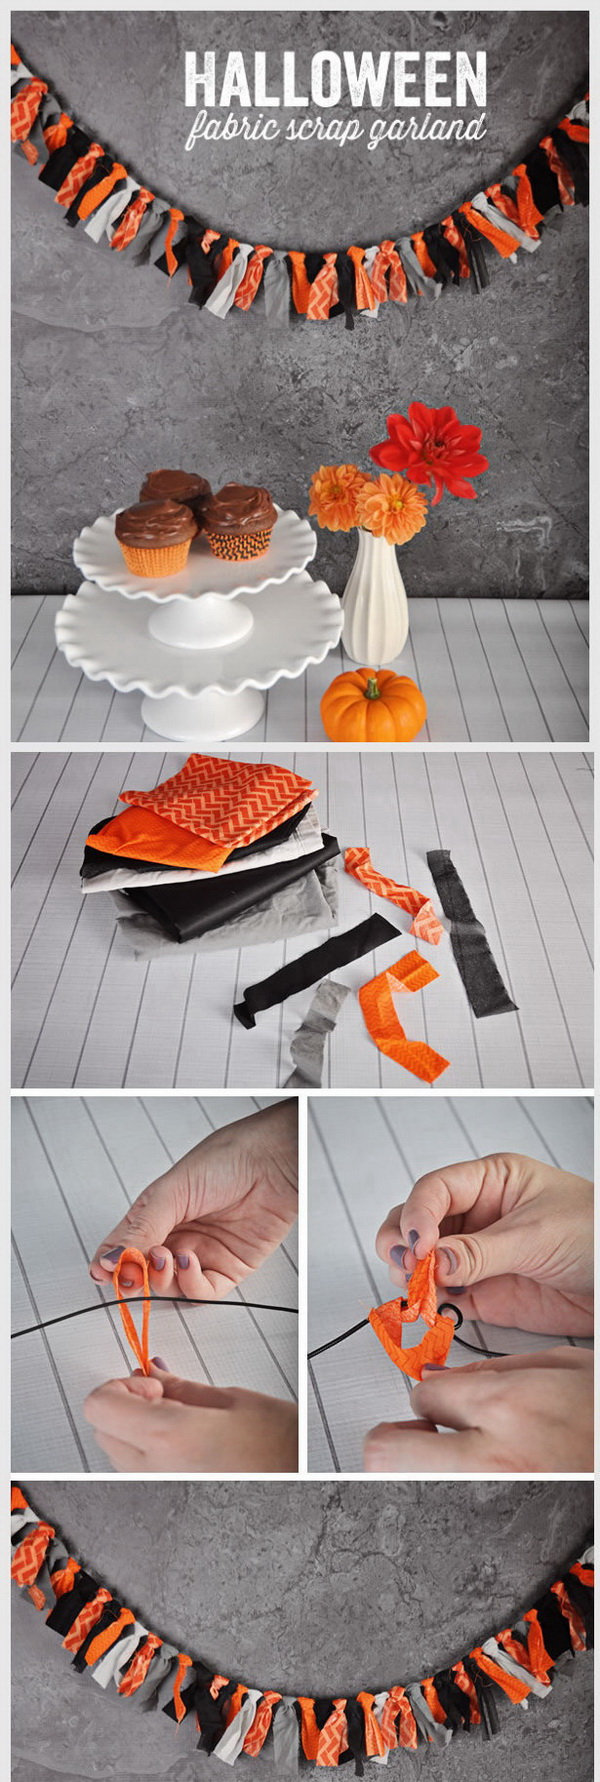 DIY Halloween Decorating Projects: DIY Halloween Fabric Scrap Garland.